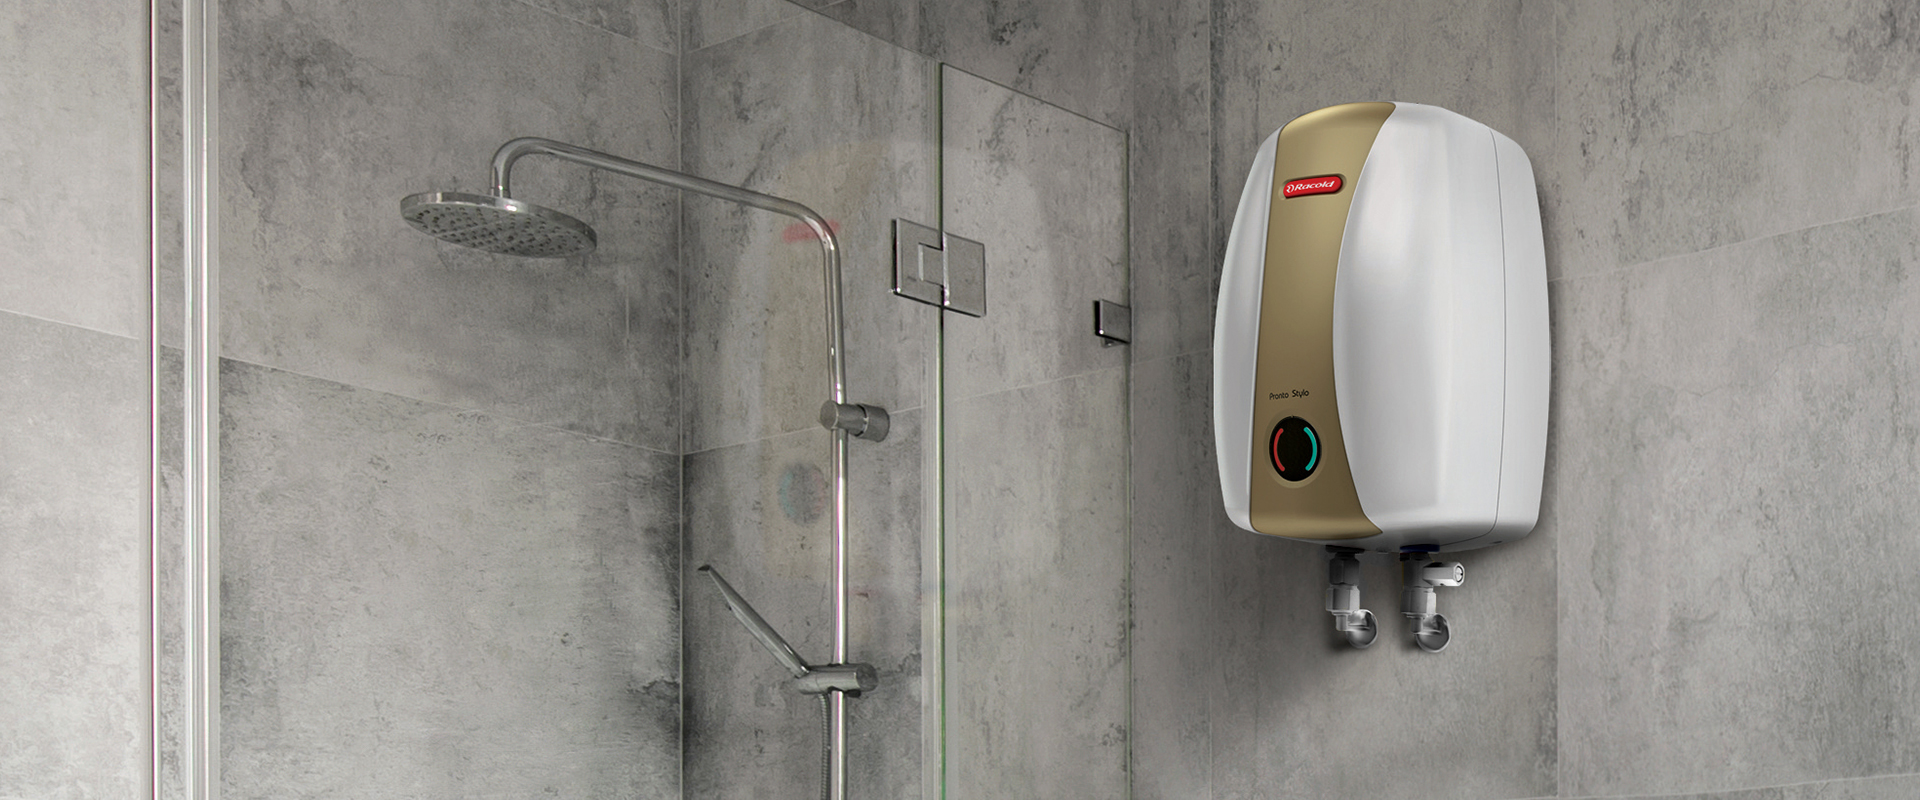 Why should you choose an electric instant water heater